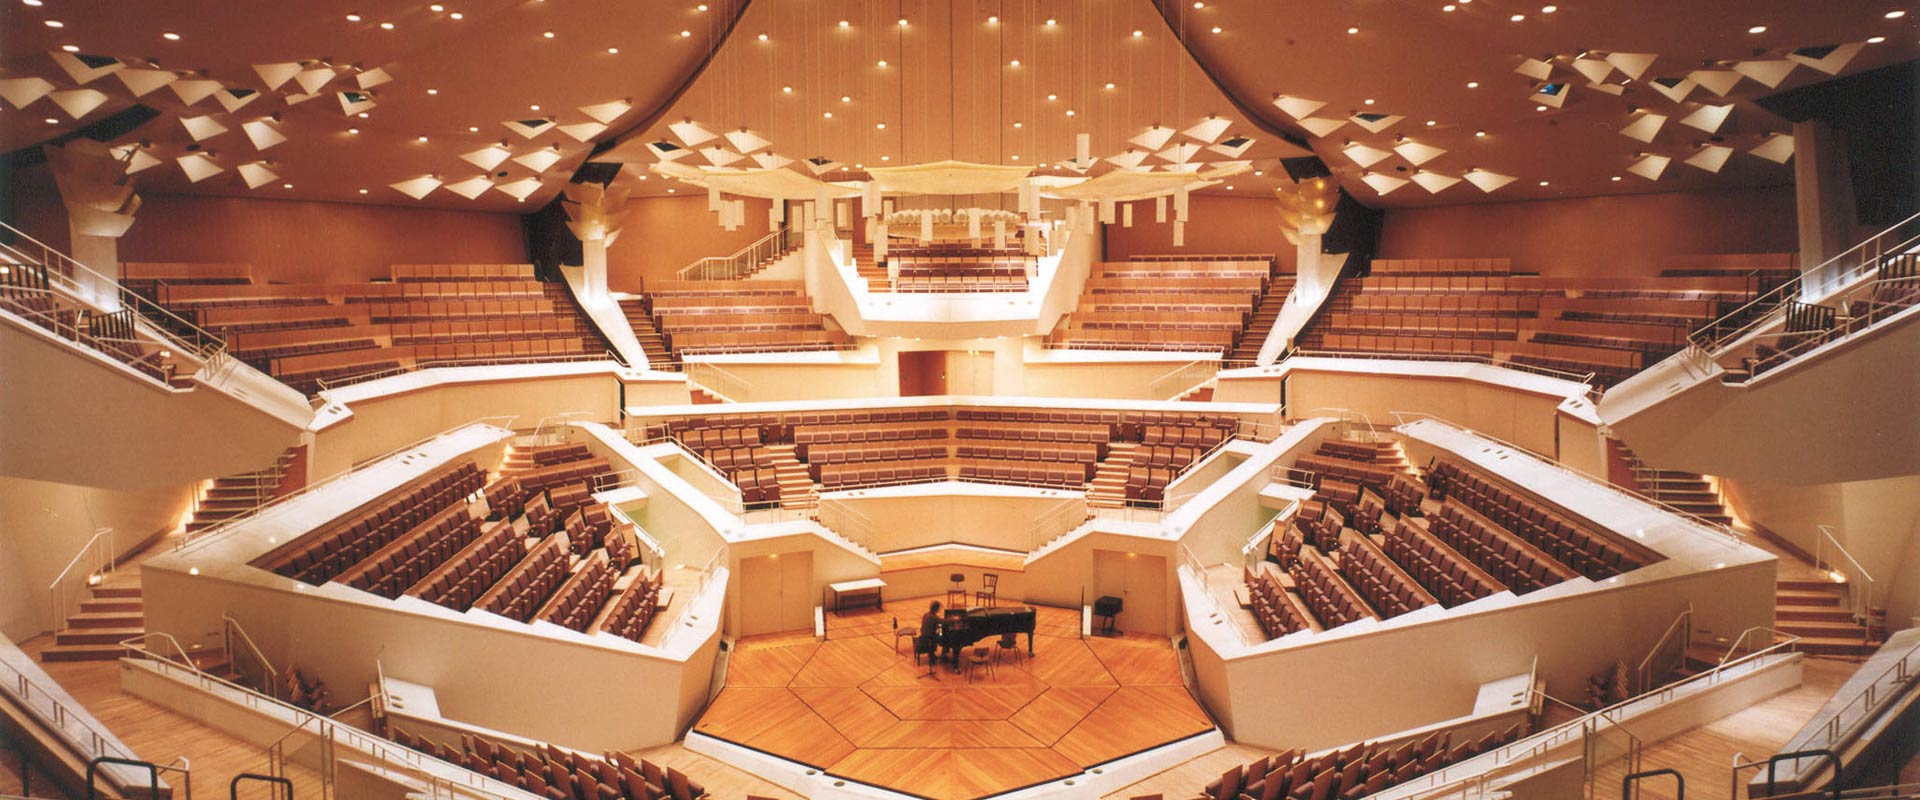 Philharmonie in Berlin